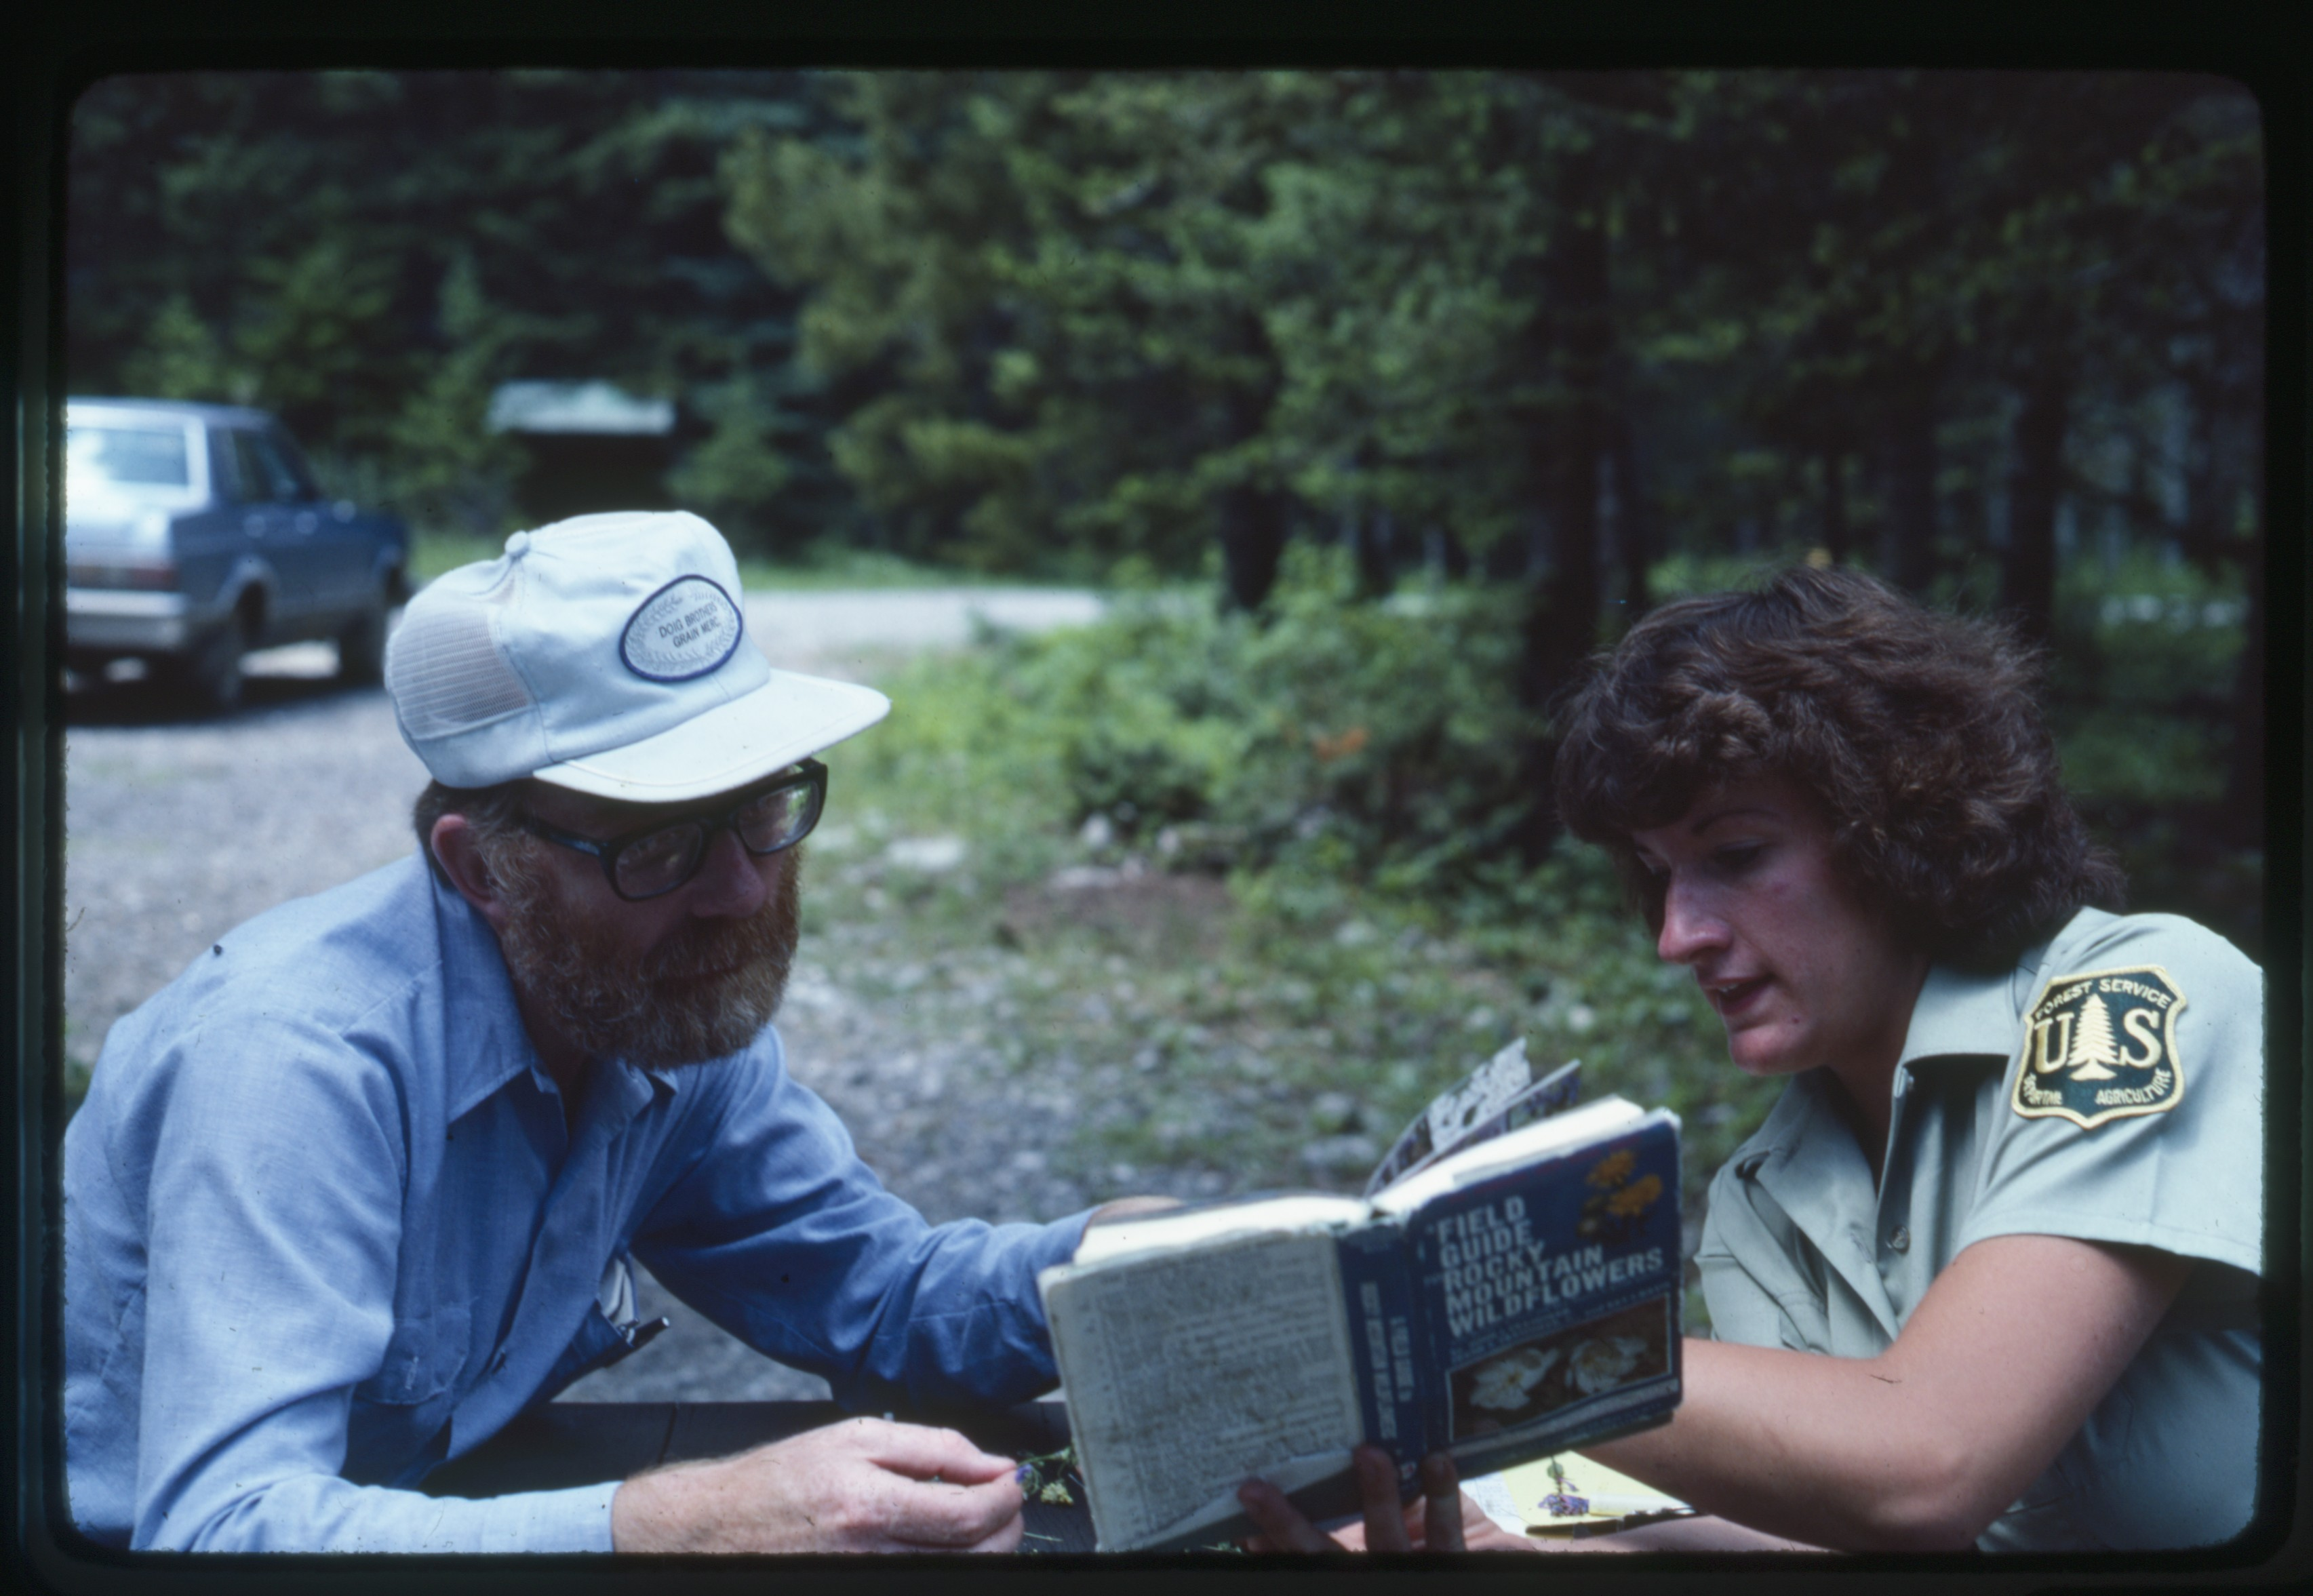 Ivan Doig and Judy Olson examine a book at Cave Mountain campground